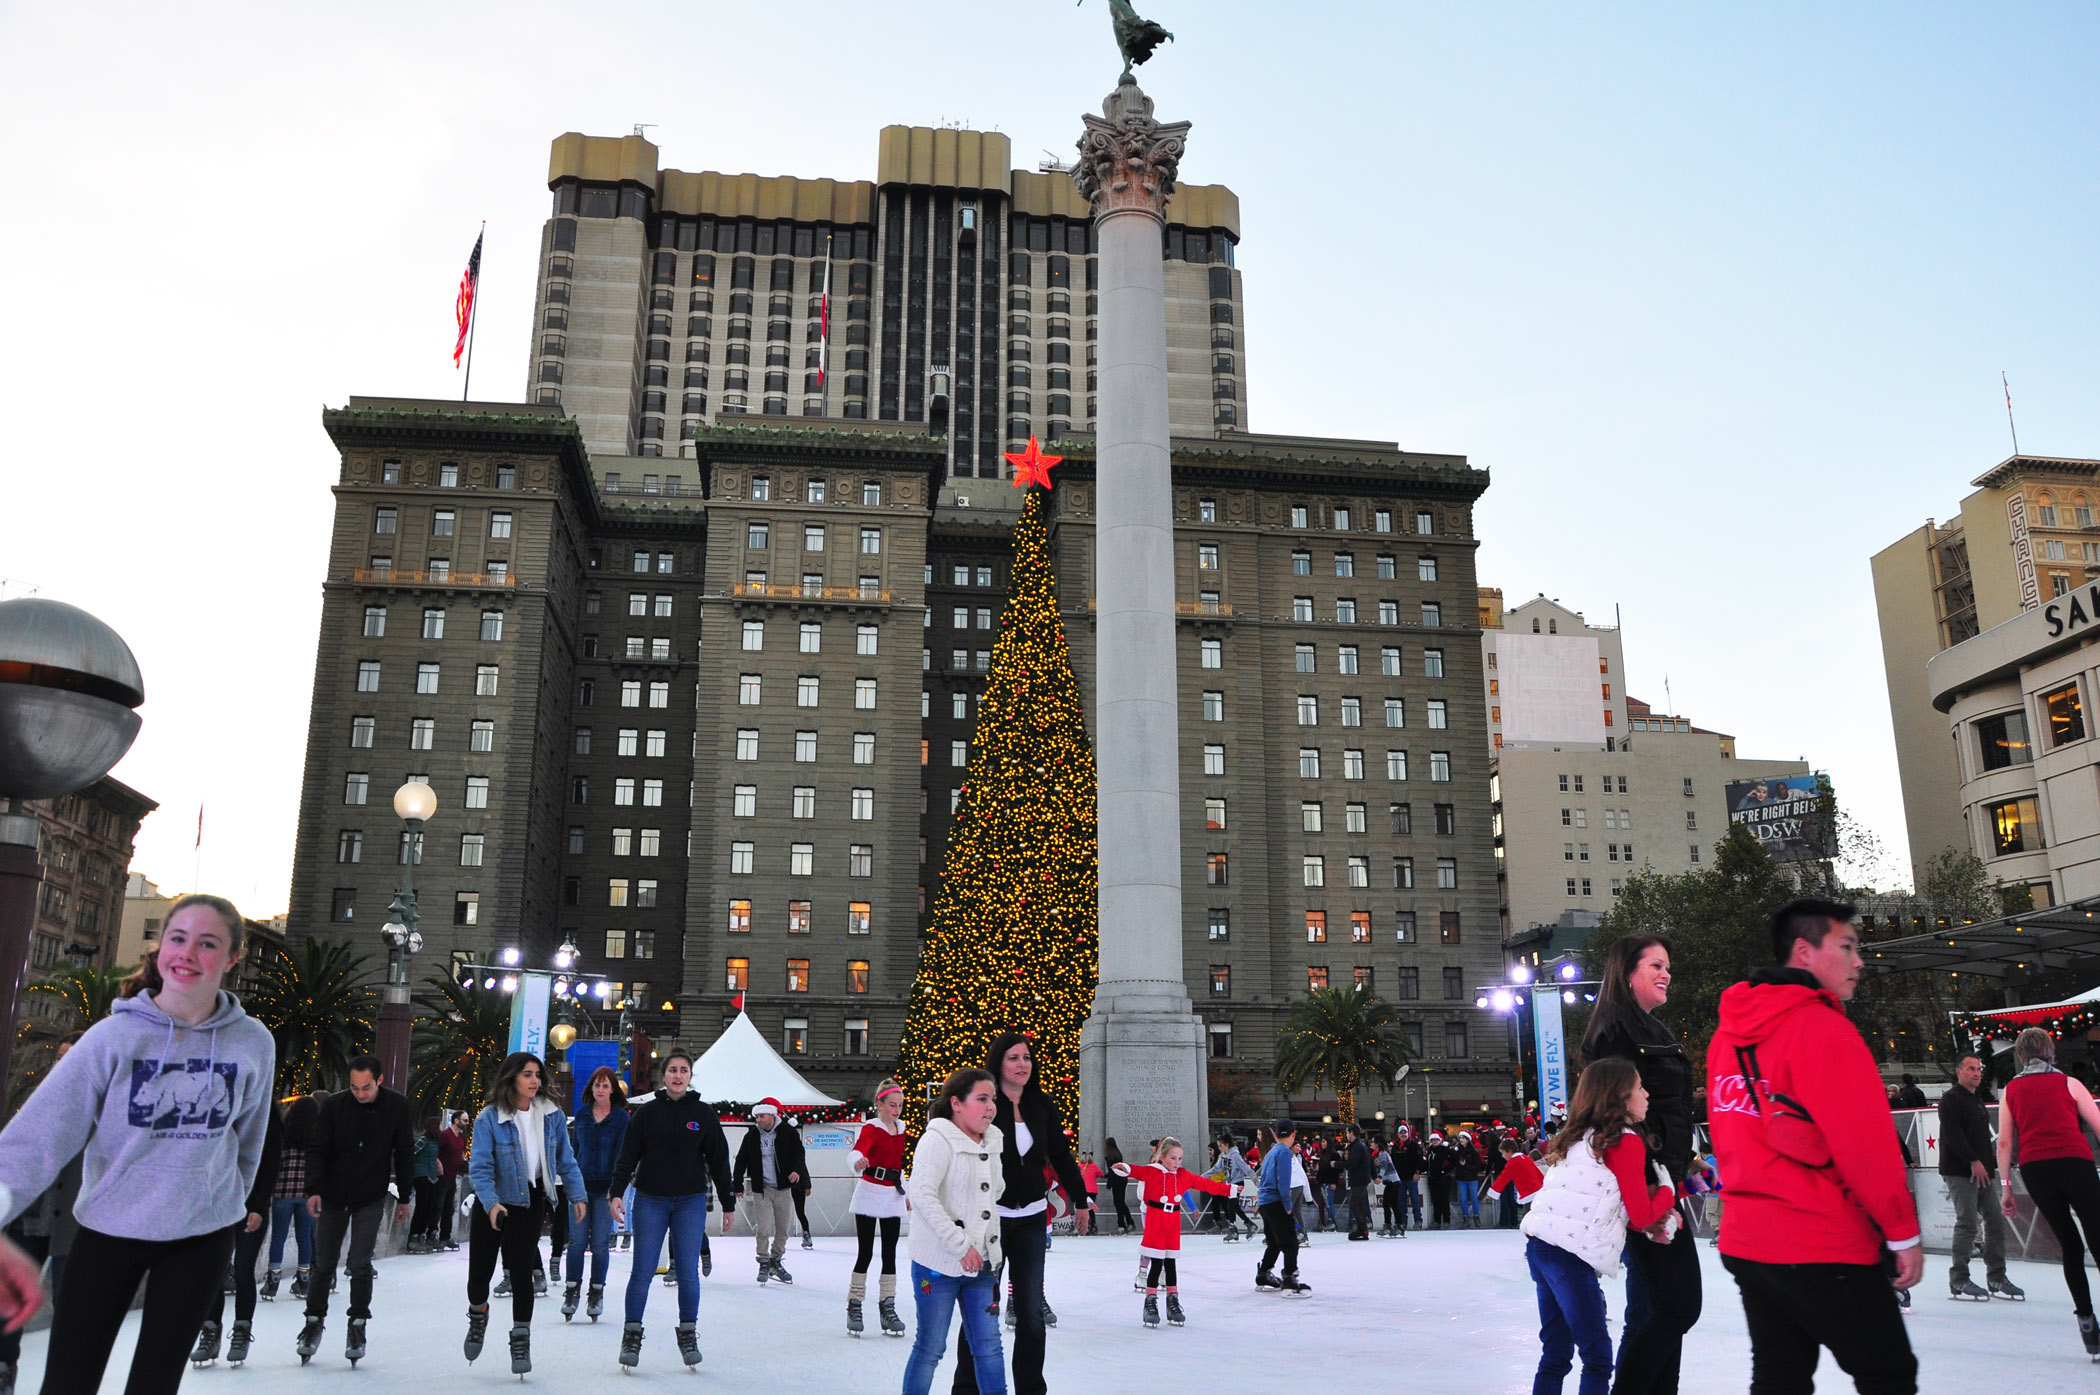 3. Holiday Ice Rink